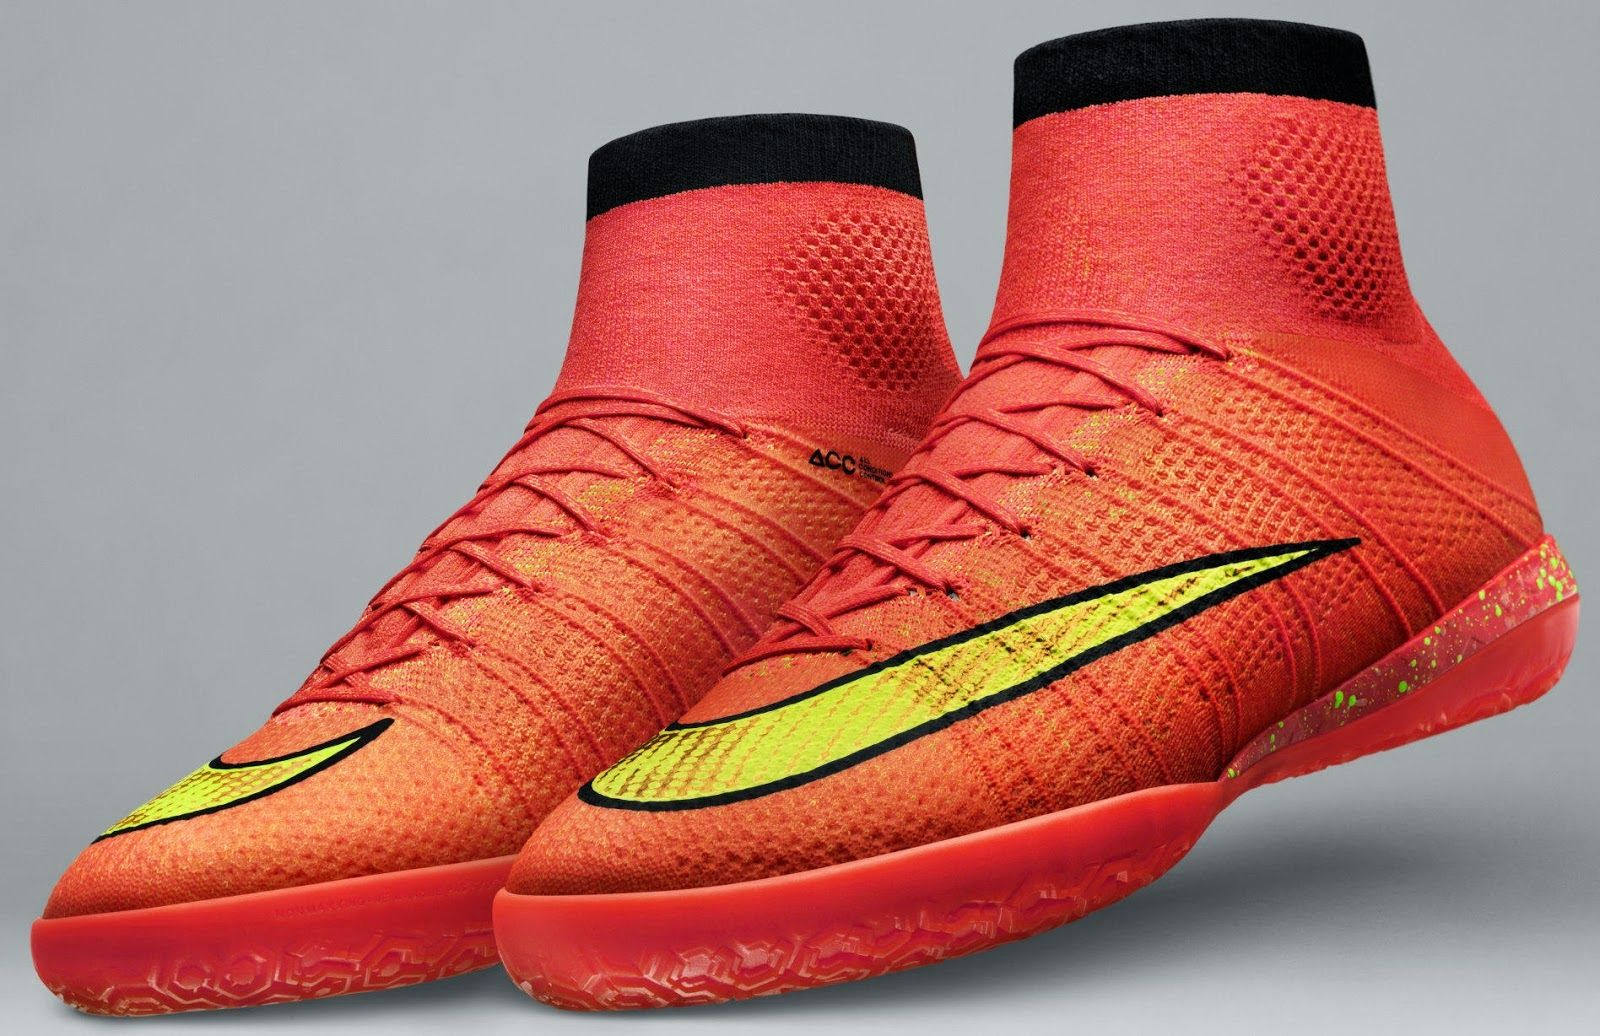 new product d7131 e4f6d ¡Nuevos botines Nike Elastico Superfly Flyknit!